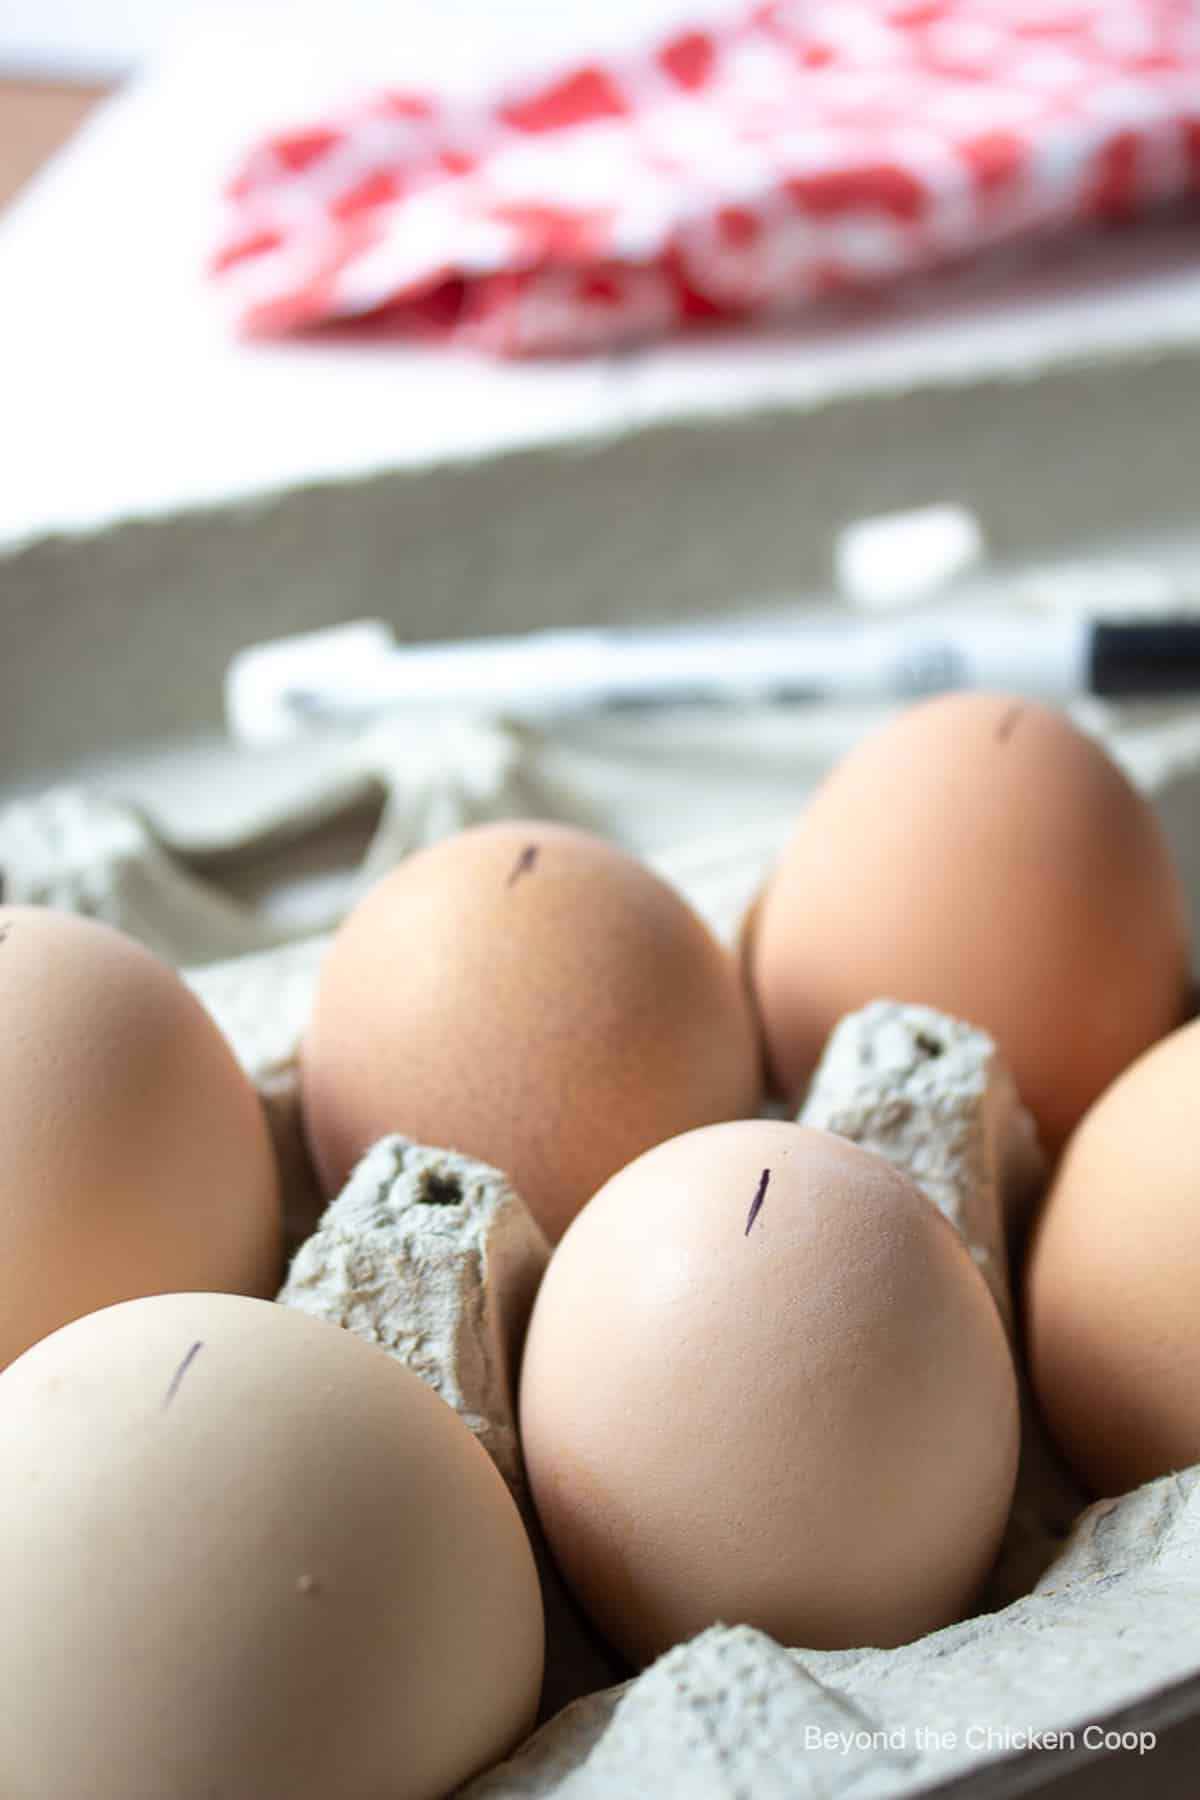 Eggs marked with a black mark in an egg carton.